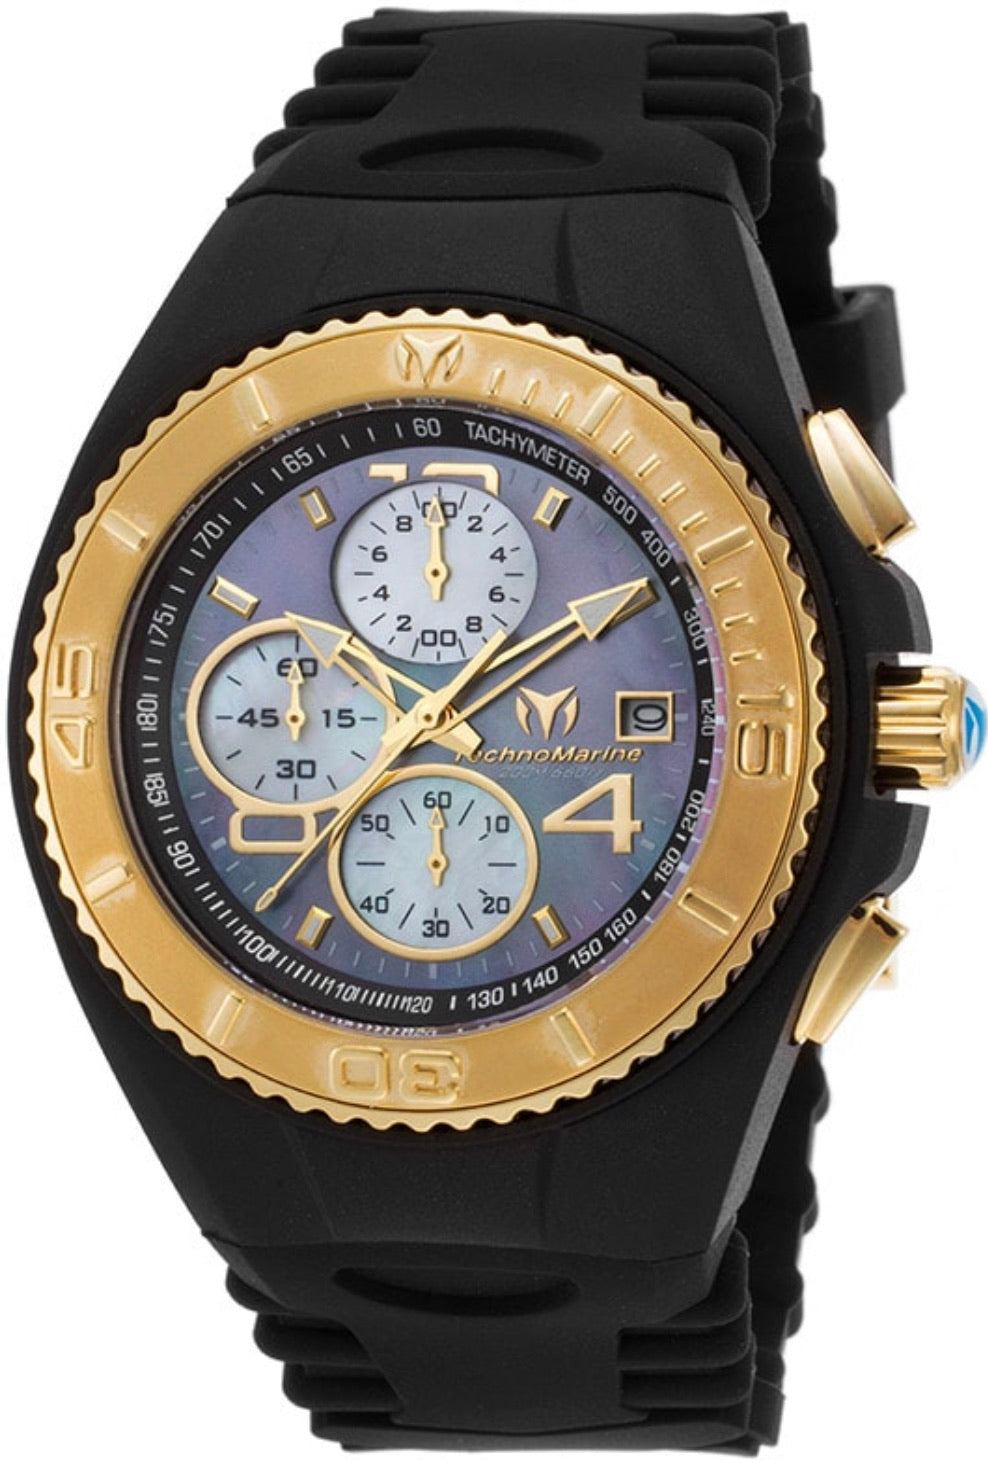 TECHNOMARINE MEN'S TM-115352 CRUISE ORIGINAL QUARTZ BLACK, GOLD DIAL WATCH - Boutique Watches & More